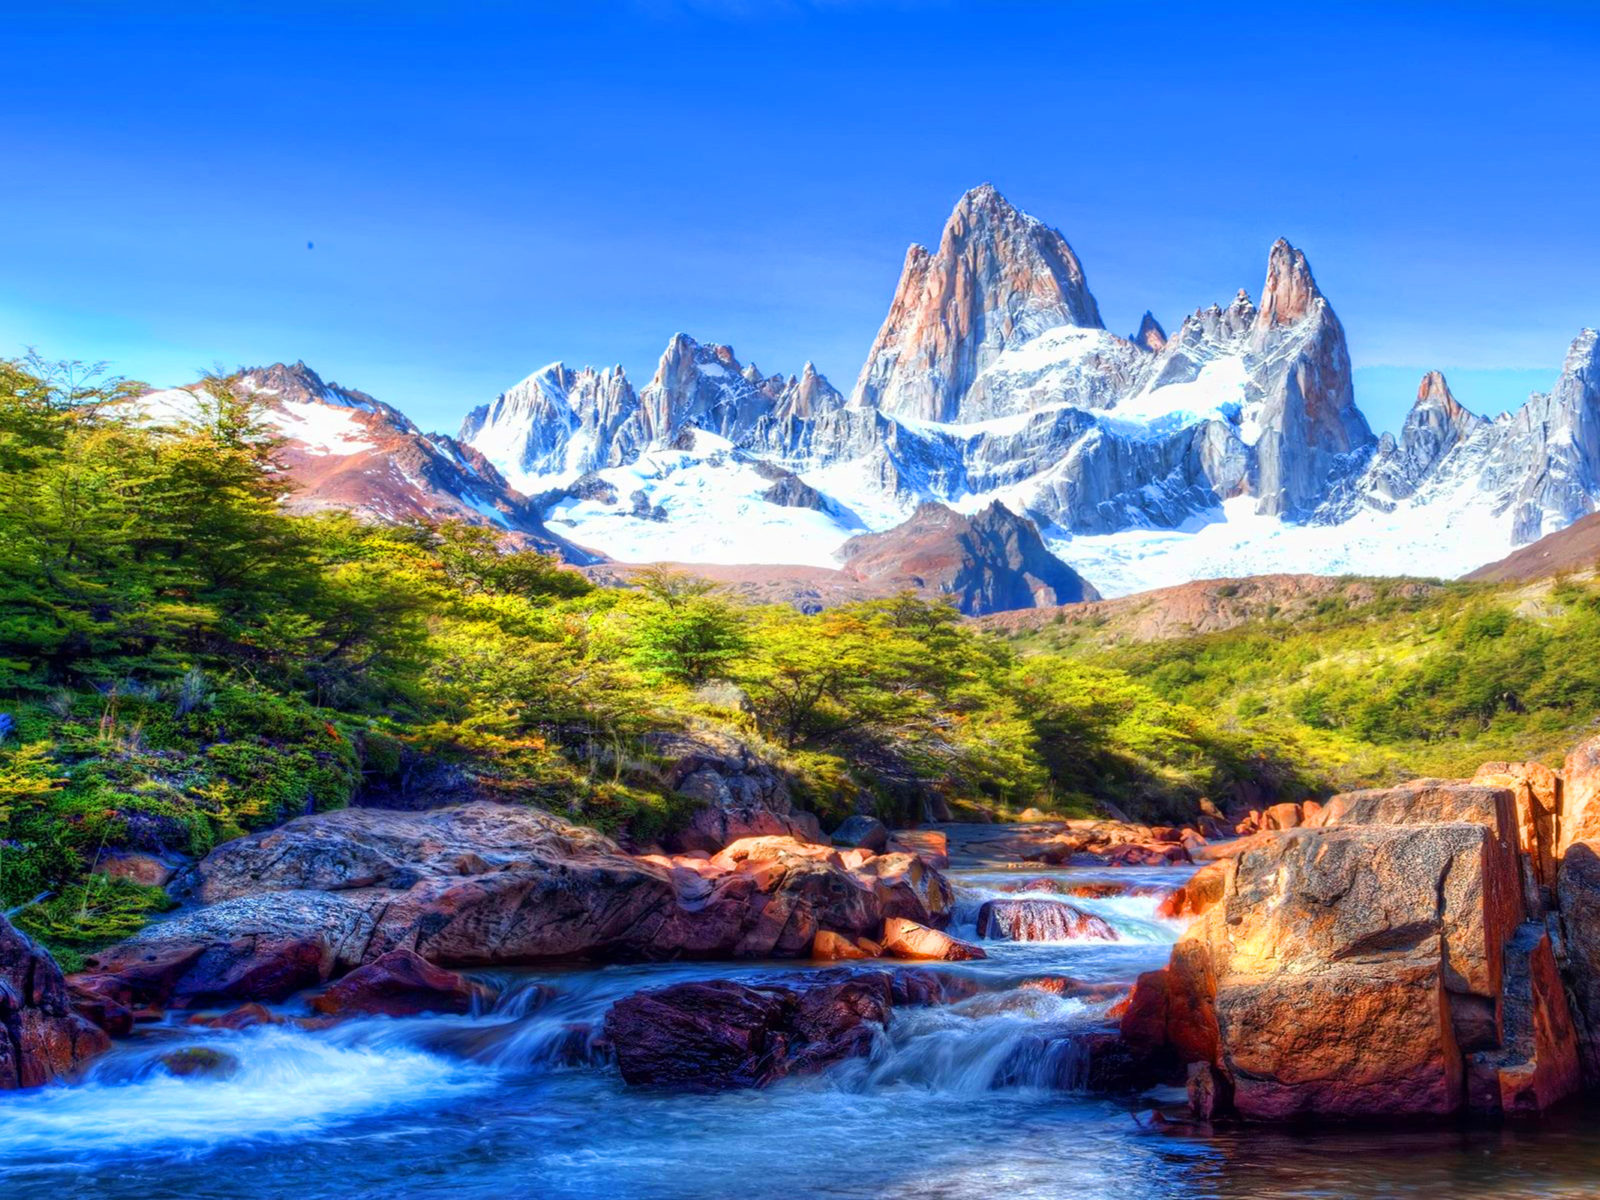 Beautiful Cars Wallpapers For Pc Mountain Scenery With Snow Covered River Rocks Beautiful